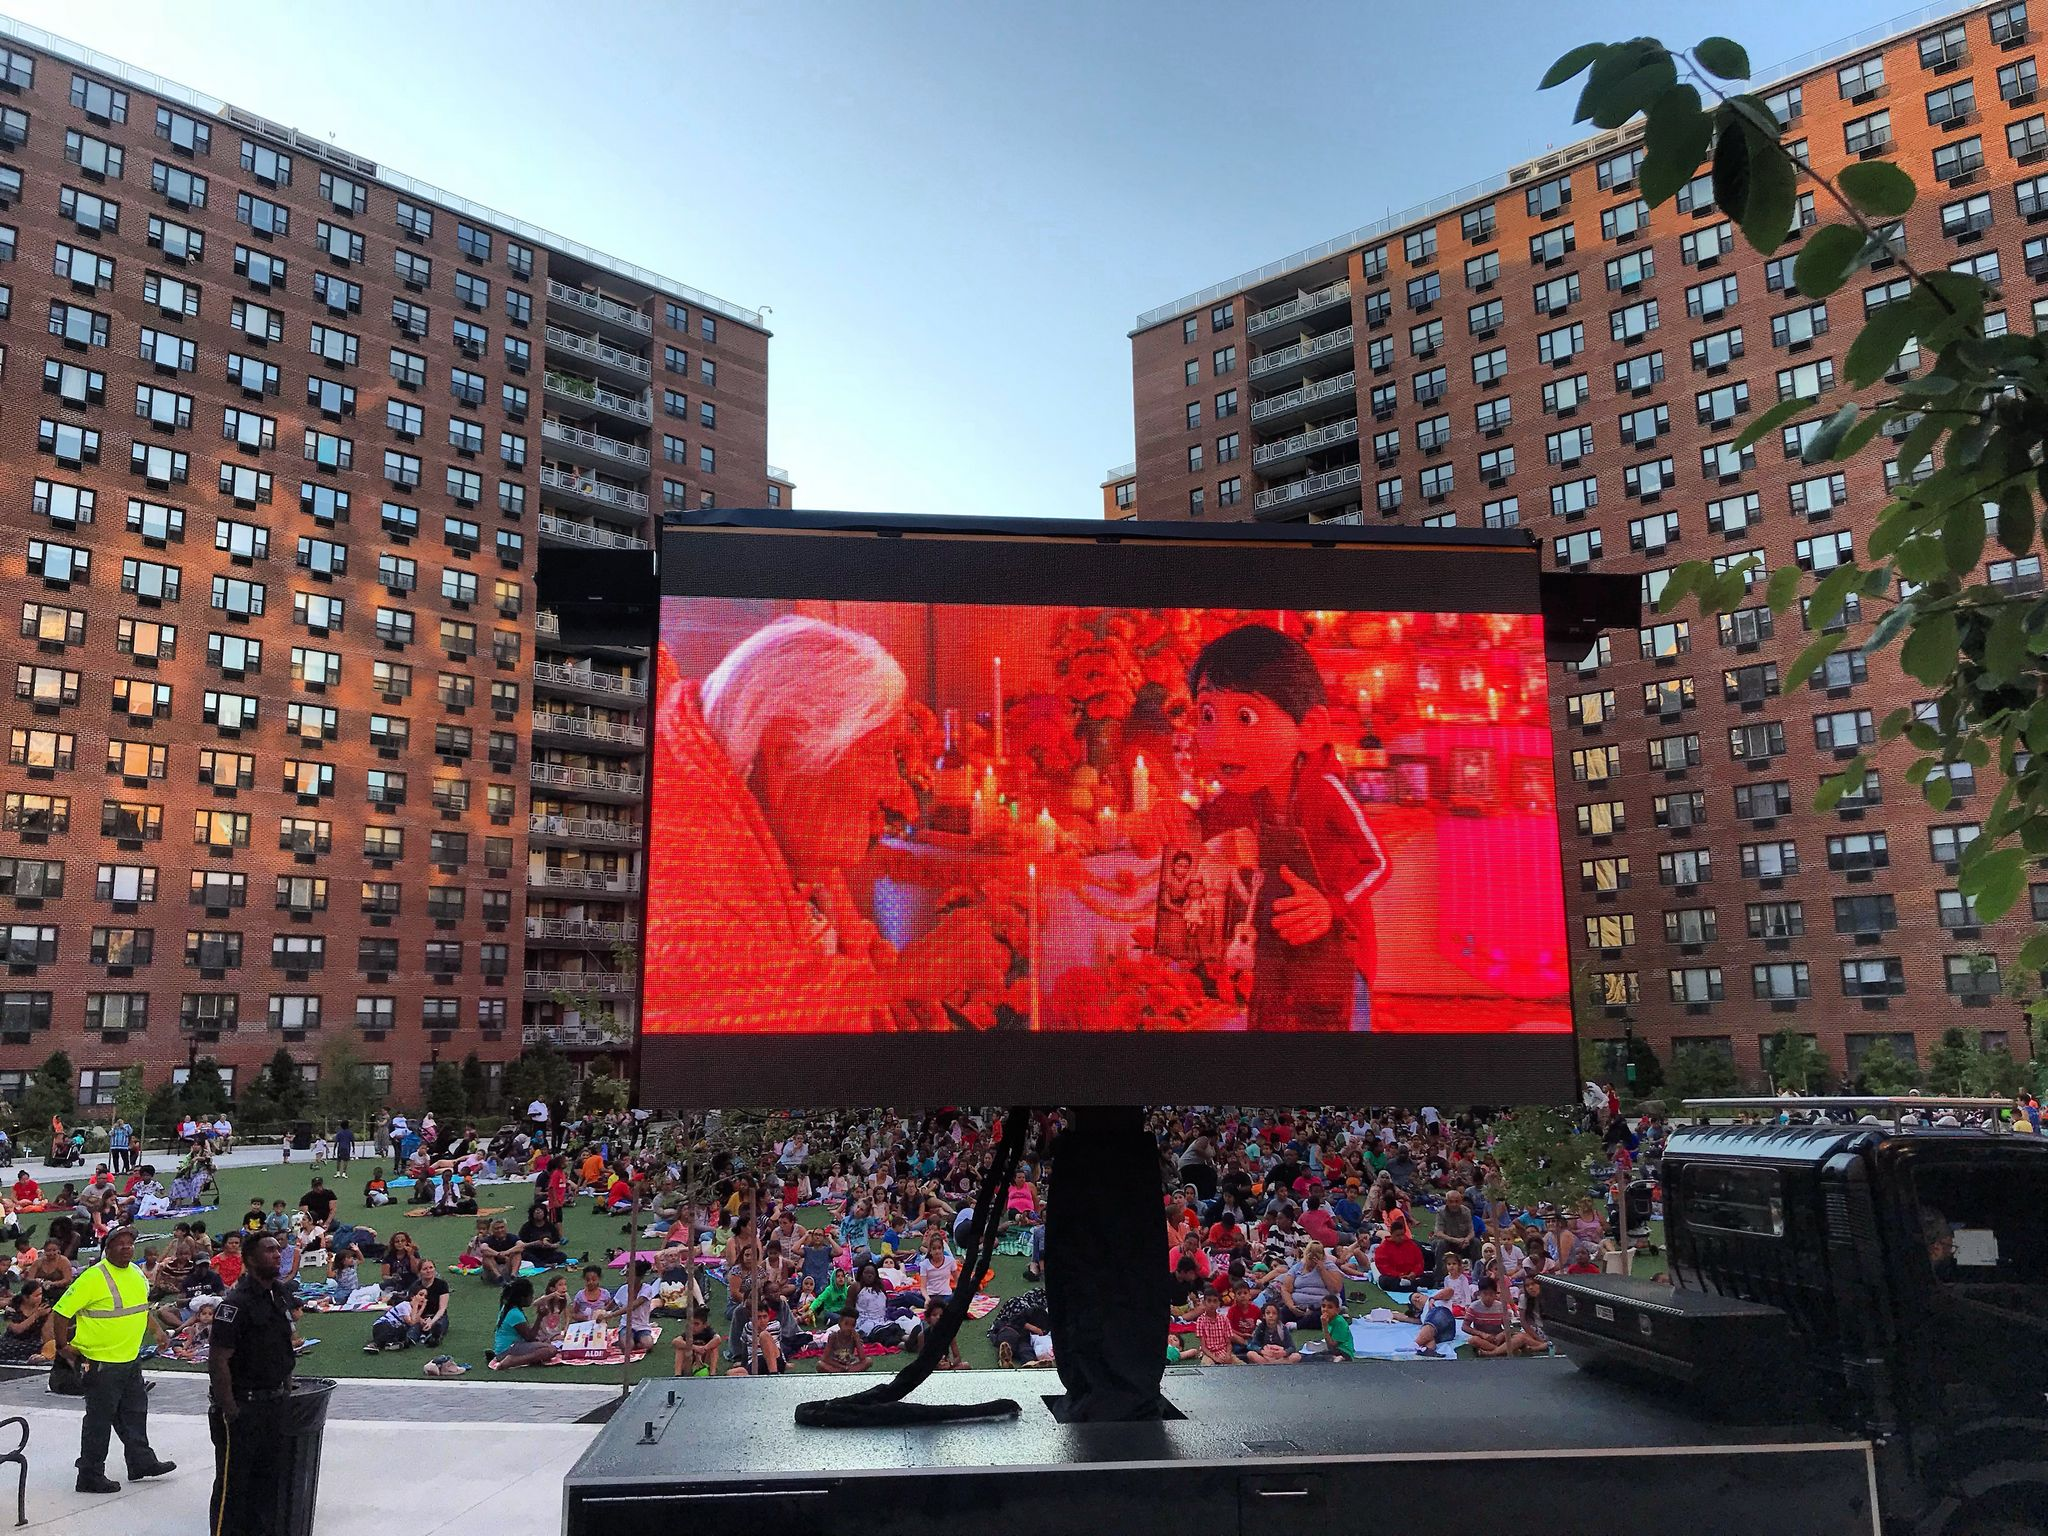 A scene from a movie being shown during LeFrak City apartments' amazing movie nights